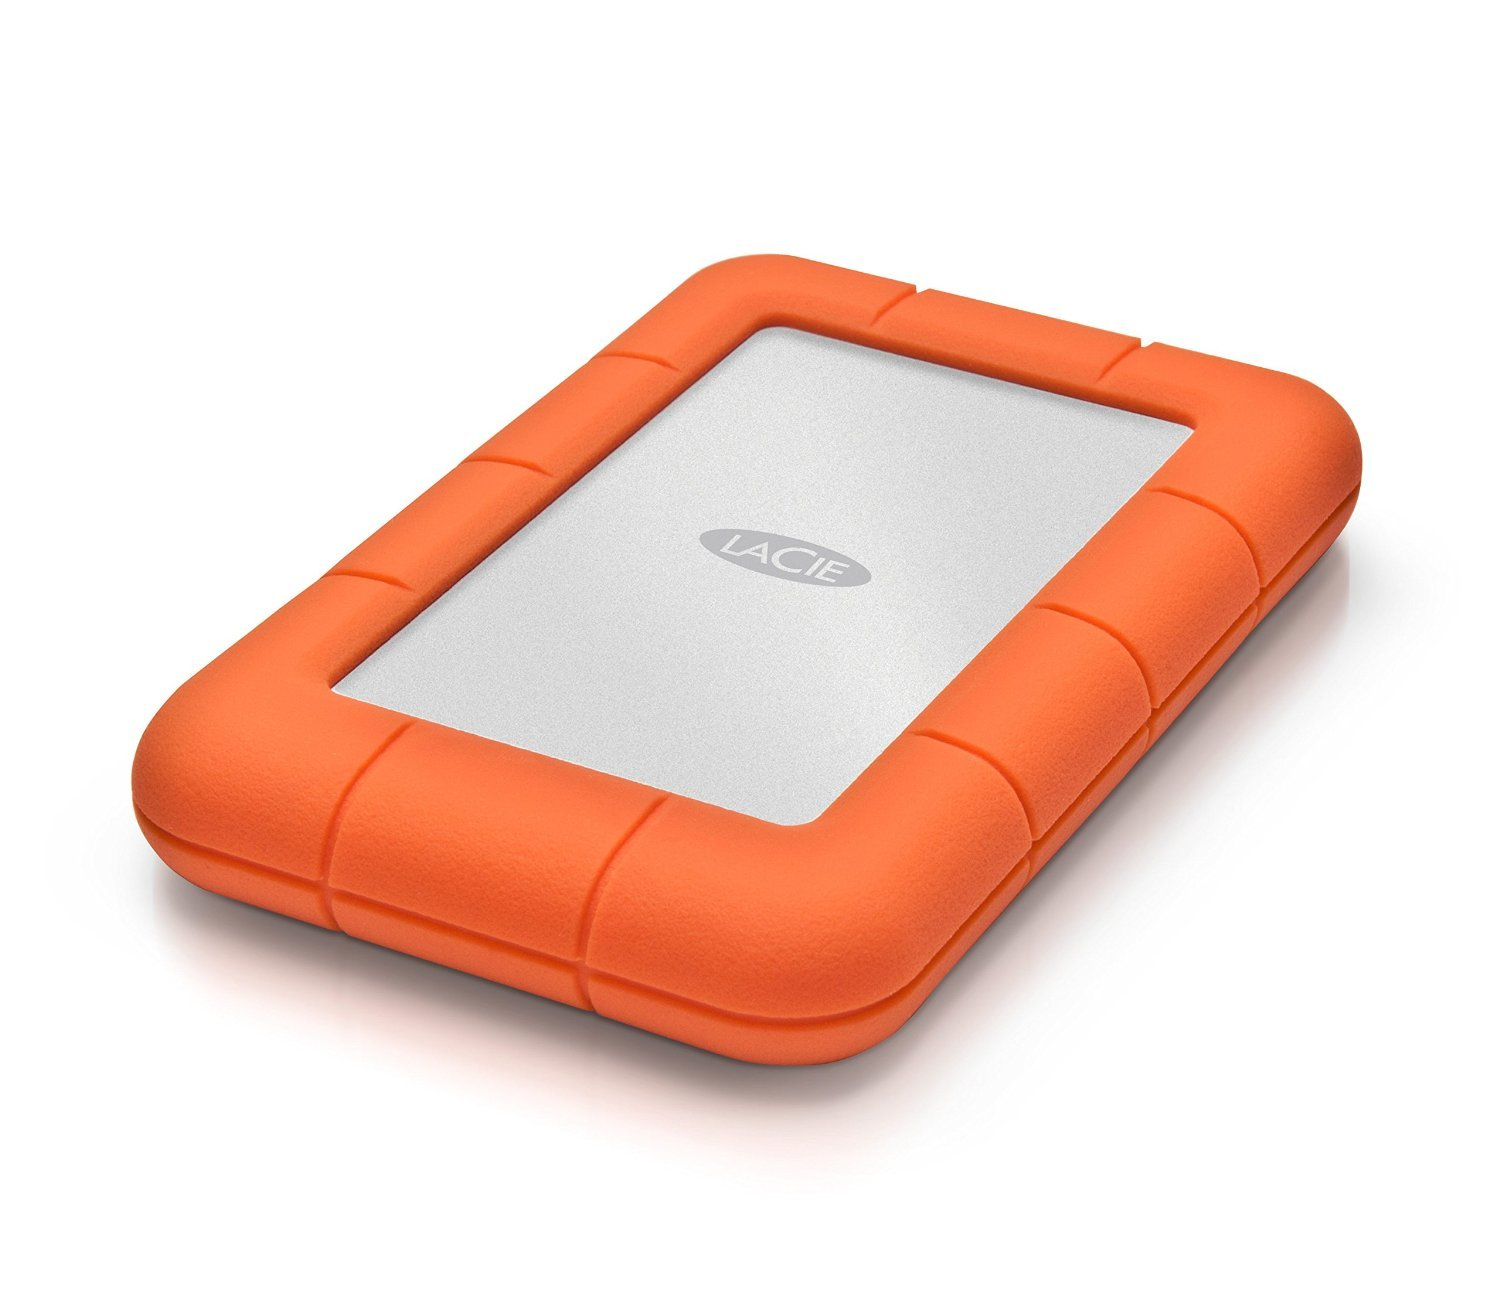 LaCie Rugged Mini USB 3.0 / USB 2.0 2TB External Mobile Hard Drive 9000298 with Ivation Compact Portable Hard Drive Case by Calumet (Image #3)